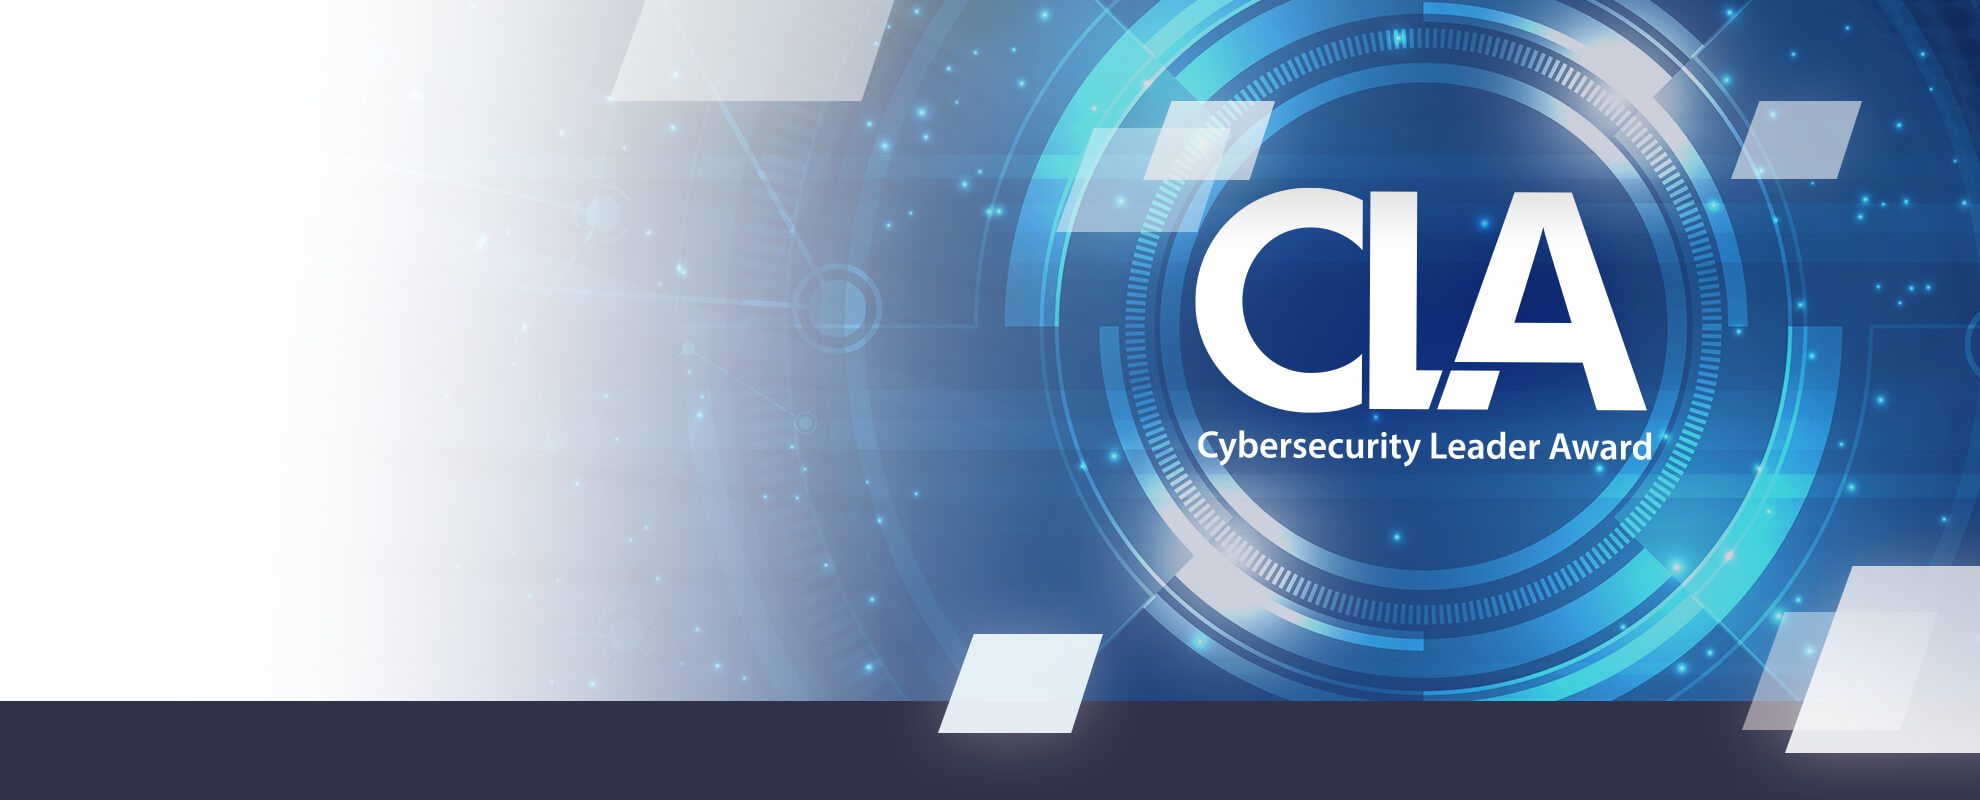 ESCRYPT wins Cybersecurity Leader Award (CLA)